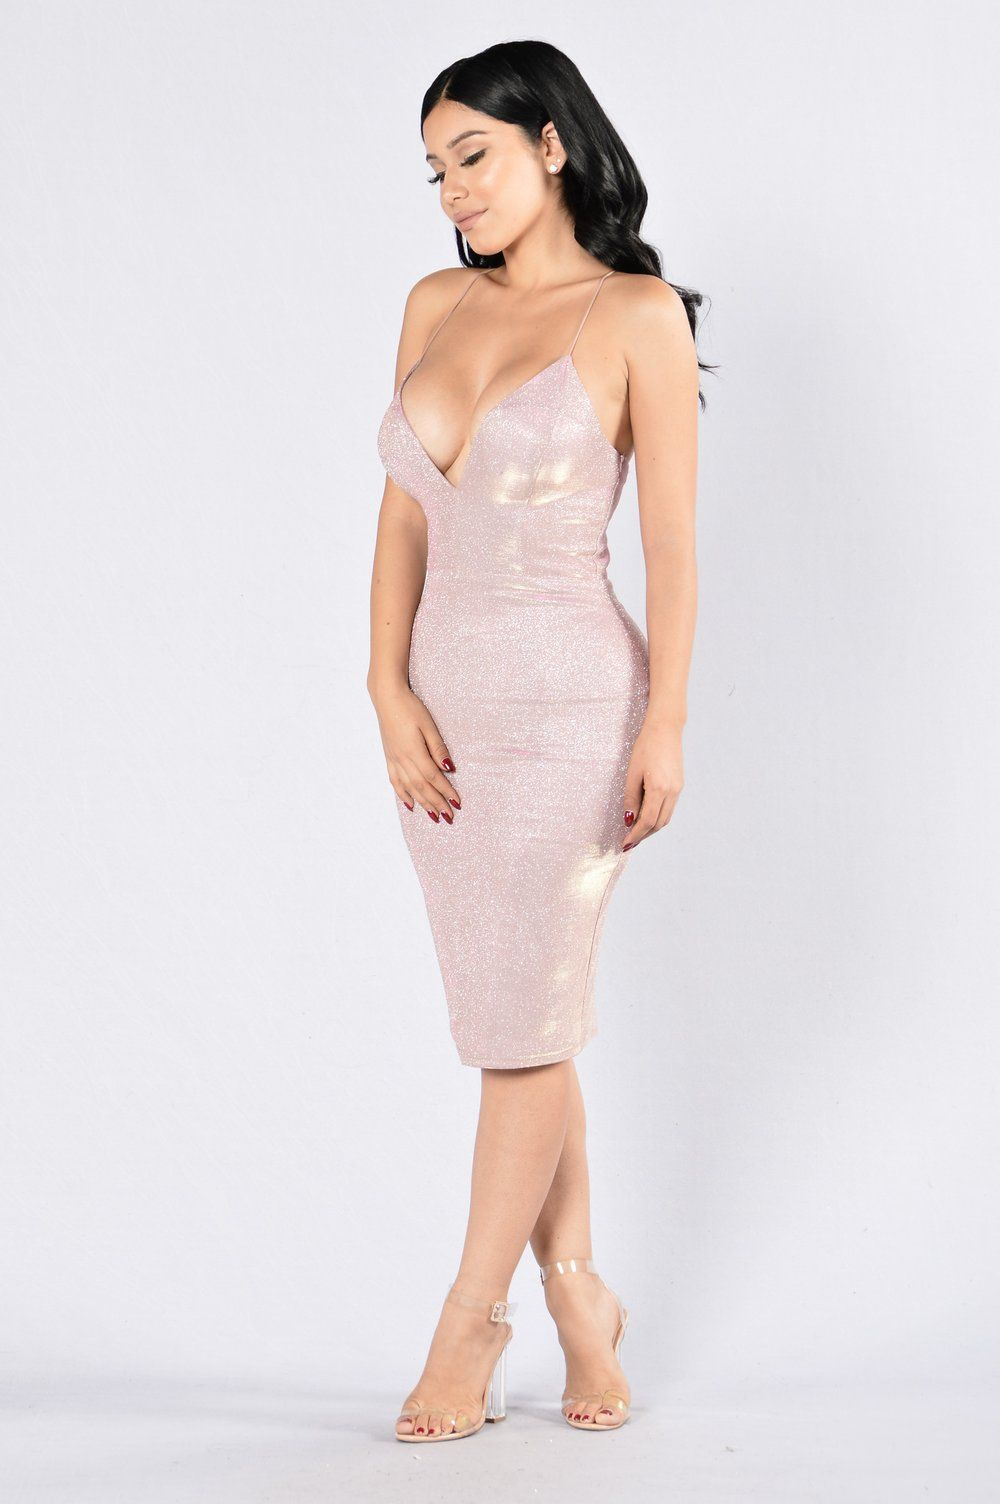 ece7510e Available in Silver and Rose Midi Length Dress Spaghetti Straps X Back V  Neckline Thin Padded Cups Lined Sparkly Design 100% Polyester